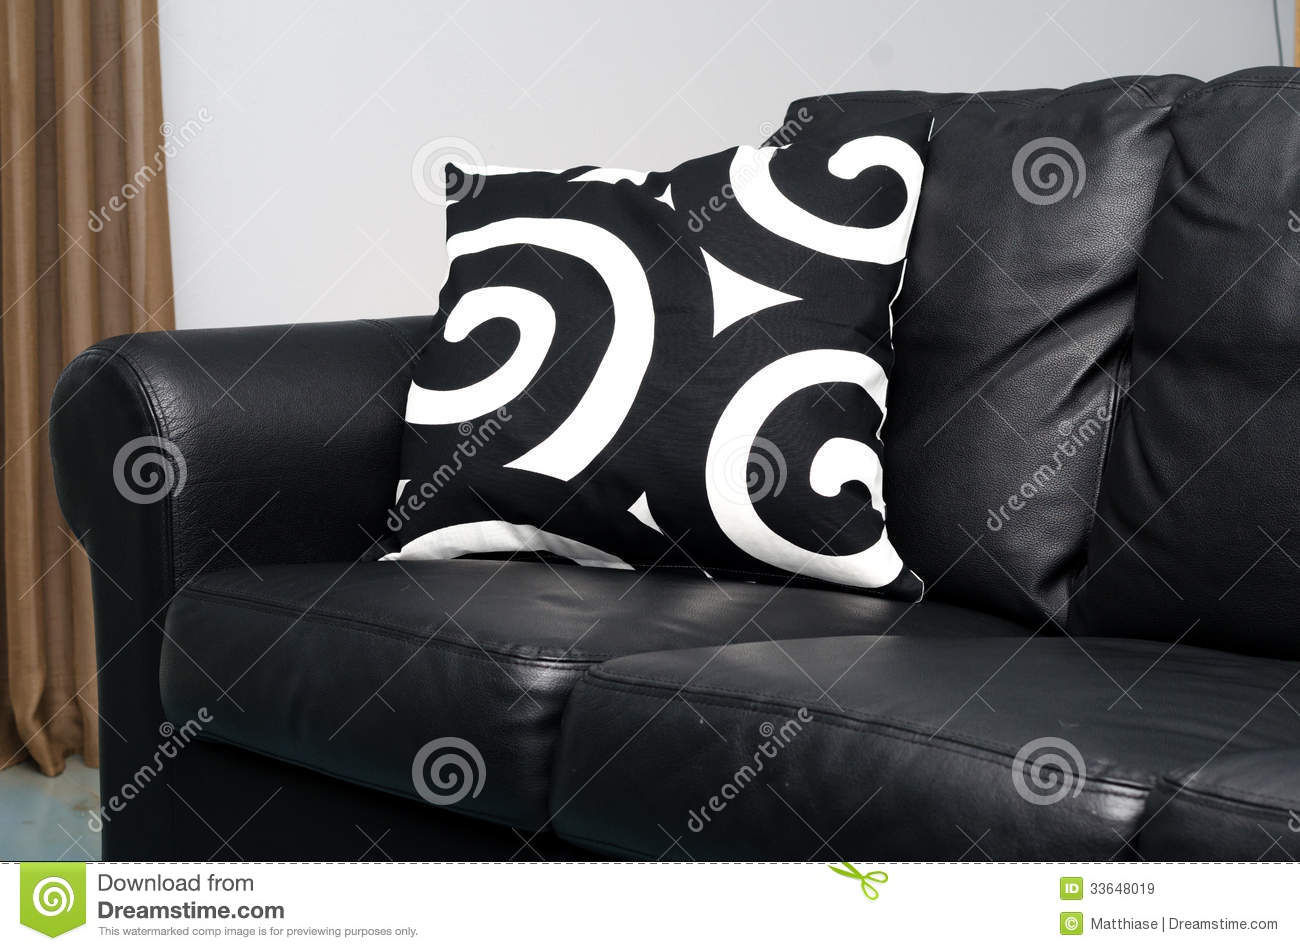 Modern Family Pillows On Couch : Black couch stock image. Image of background, furniture - 33648019